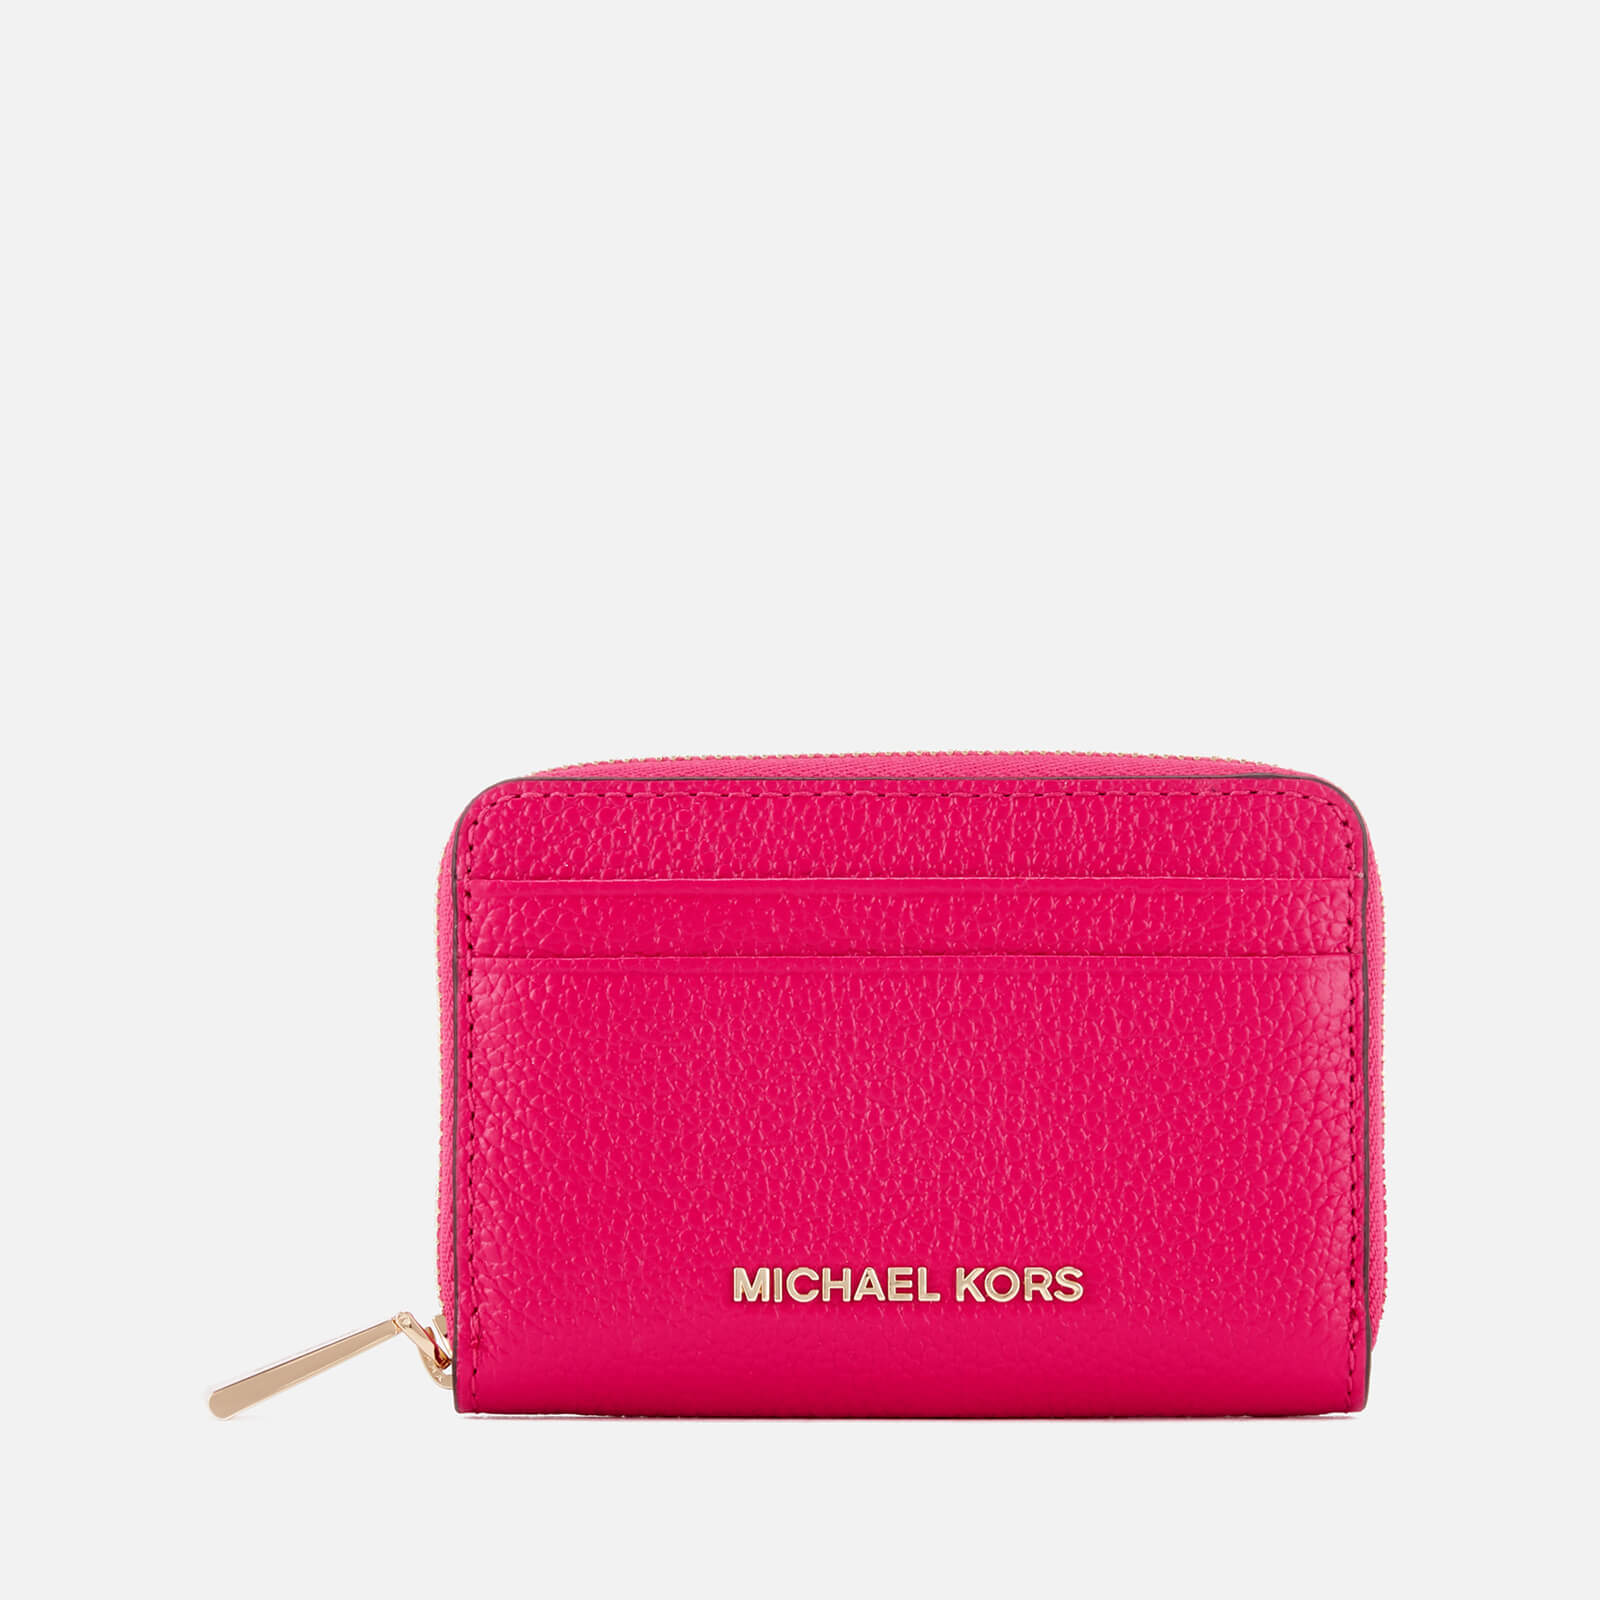 eb74122c987e2f MICHAEL MICHAEL KORS Women's Zip Around Card Case - Ultra Pink - Free UK  Delivery over £50